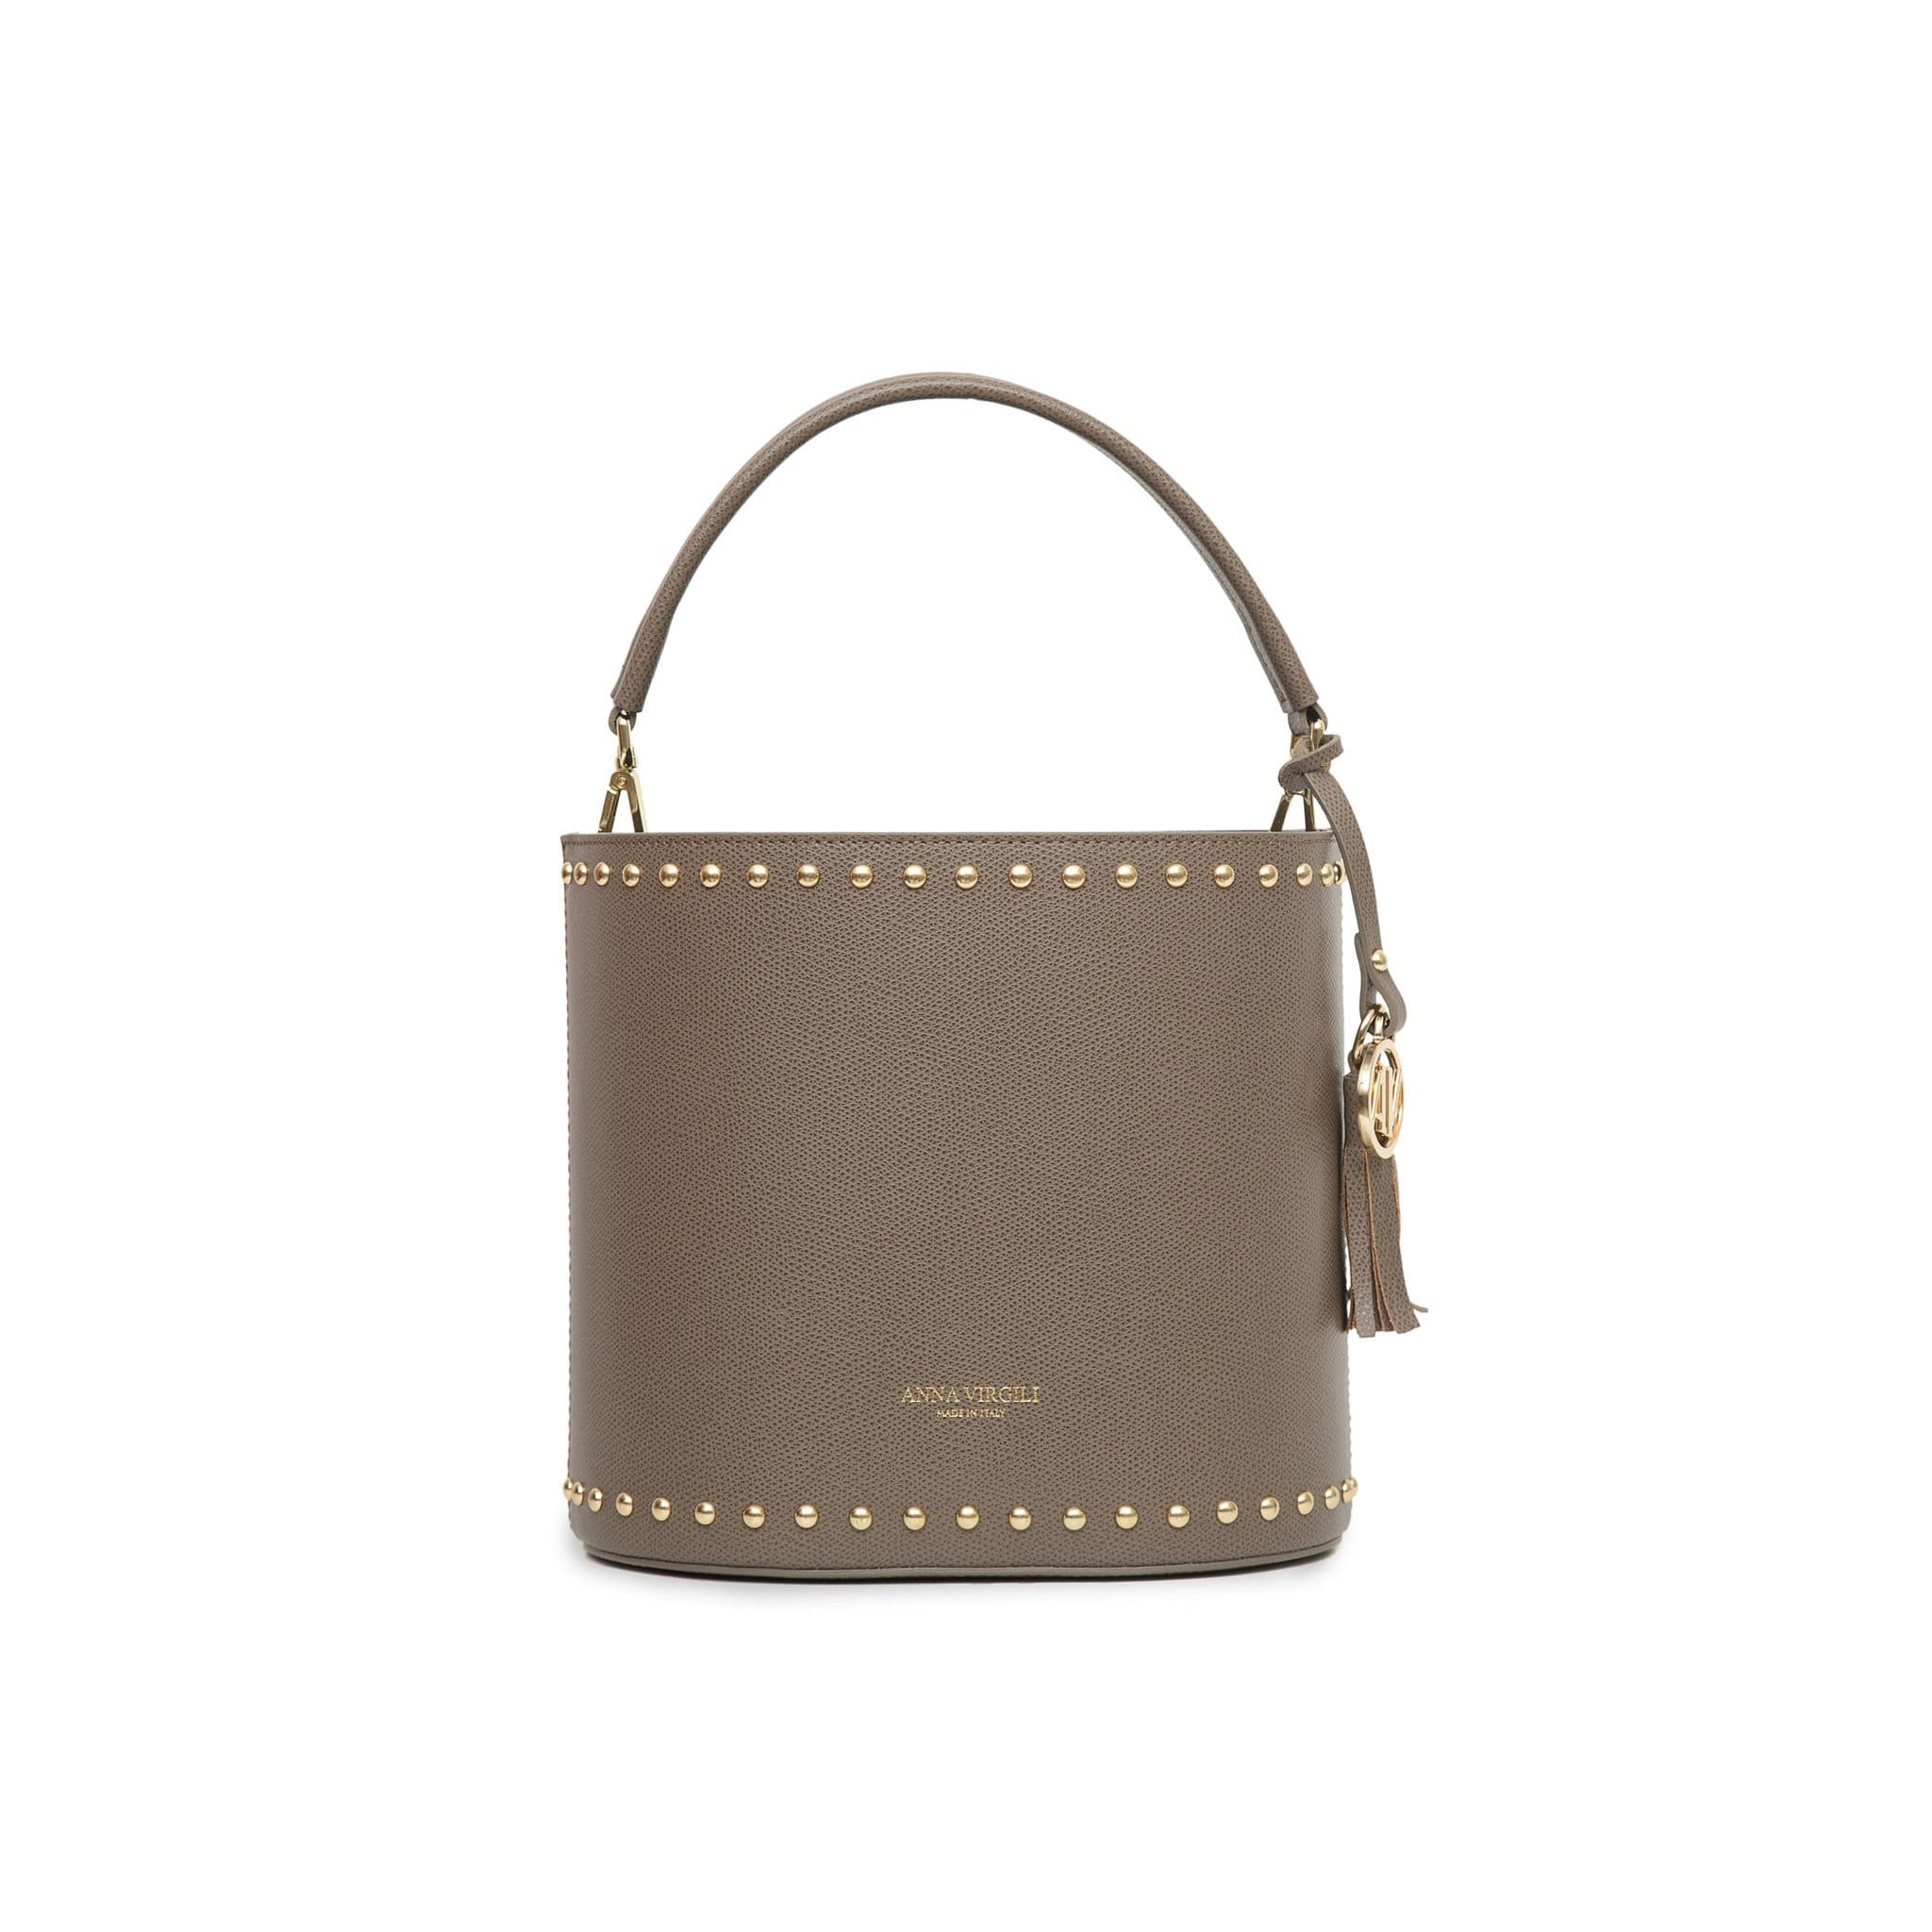 Nicole West Leather Bucket Bag -Taupe